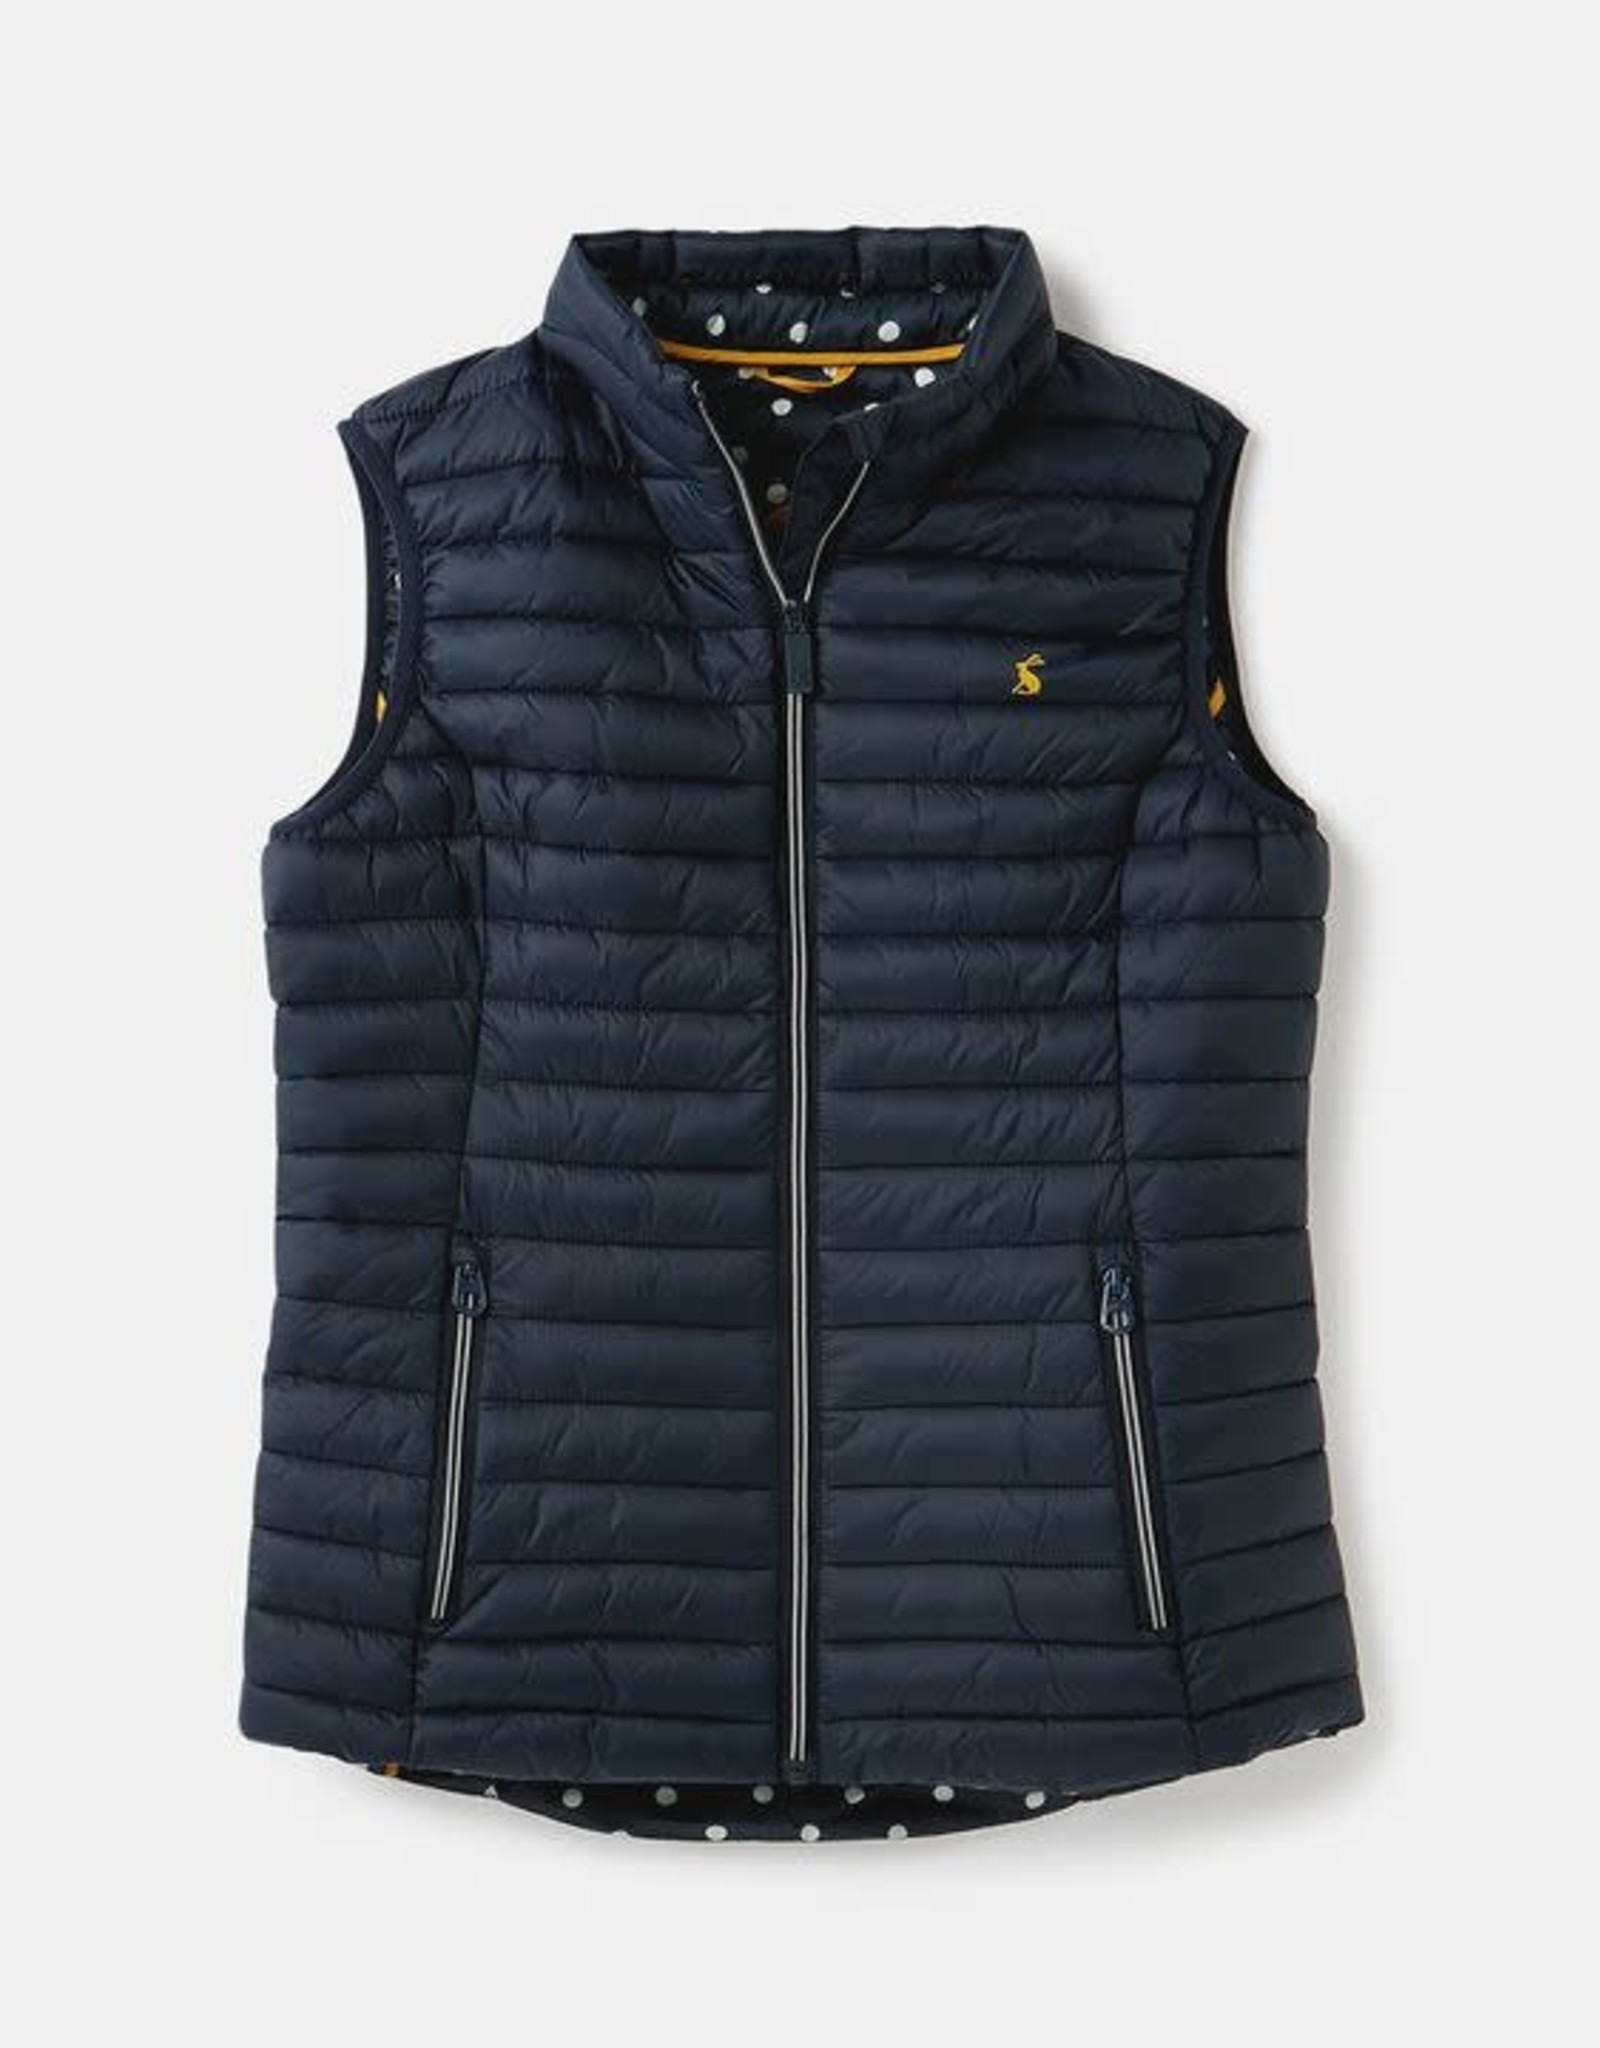 Joules Joules Water Resistant Packable Gillet